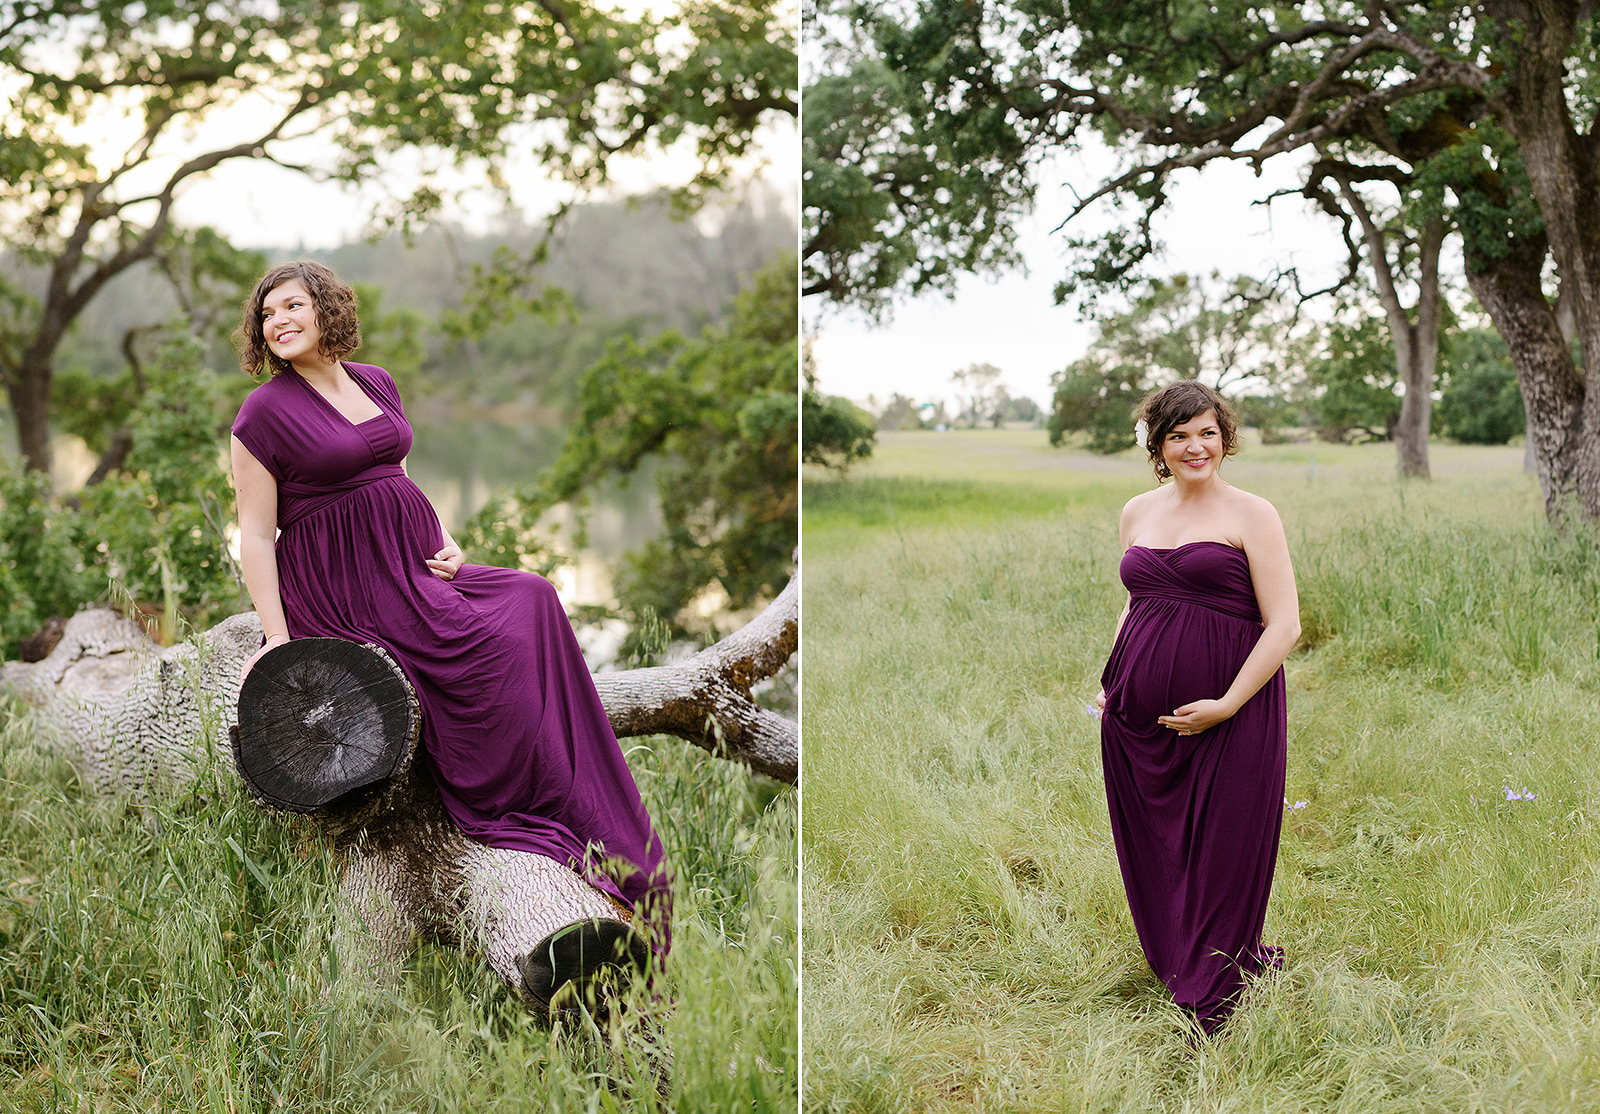 Maternity photos in green grassy field and fallen tree log in Folsom